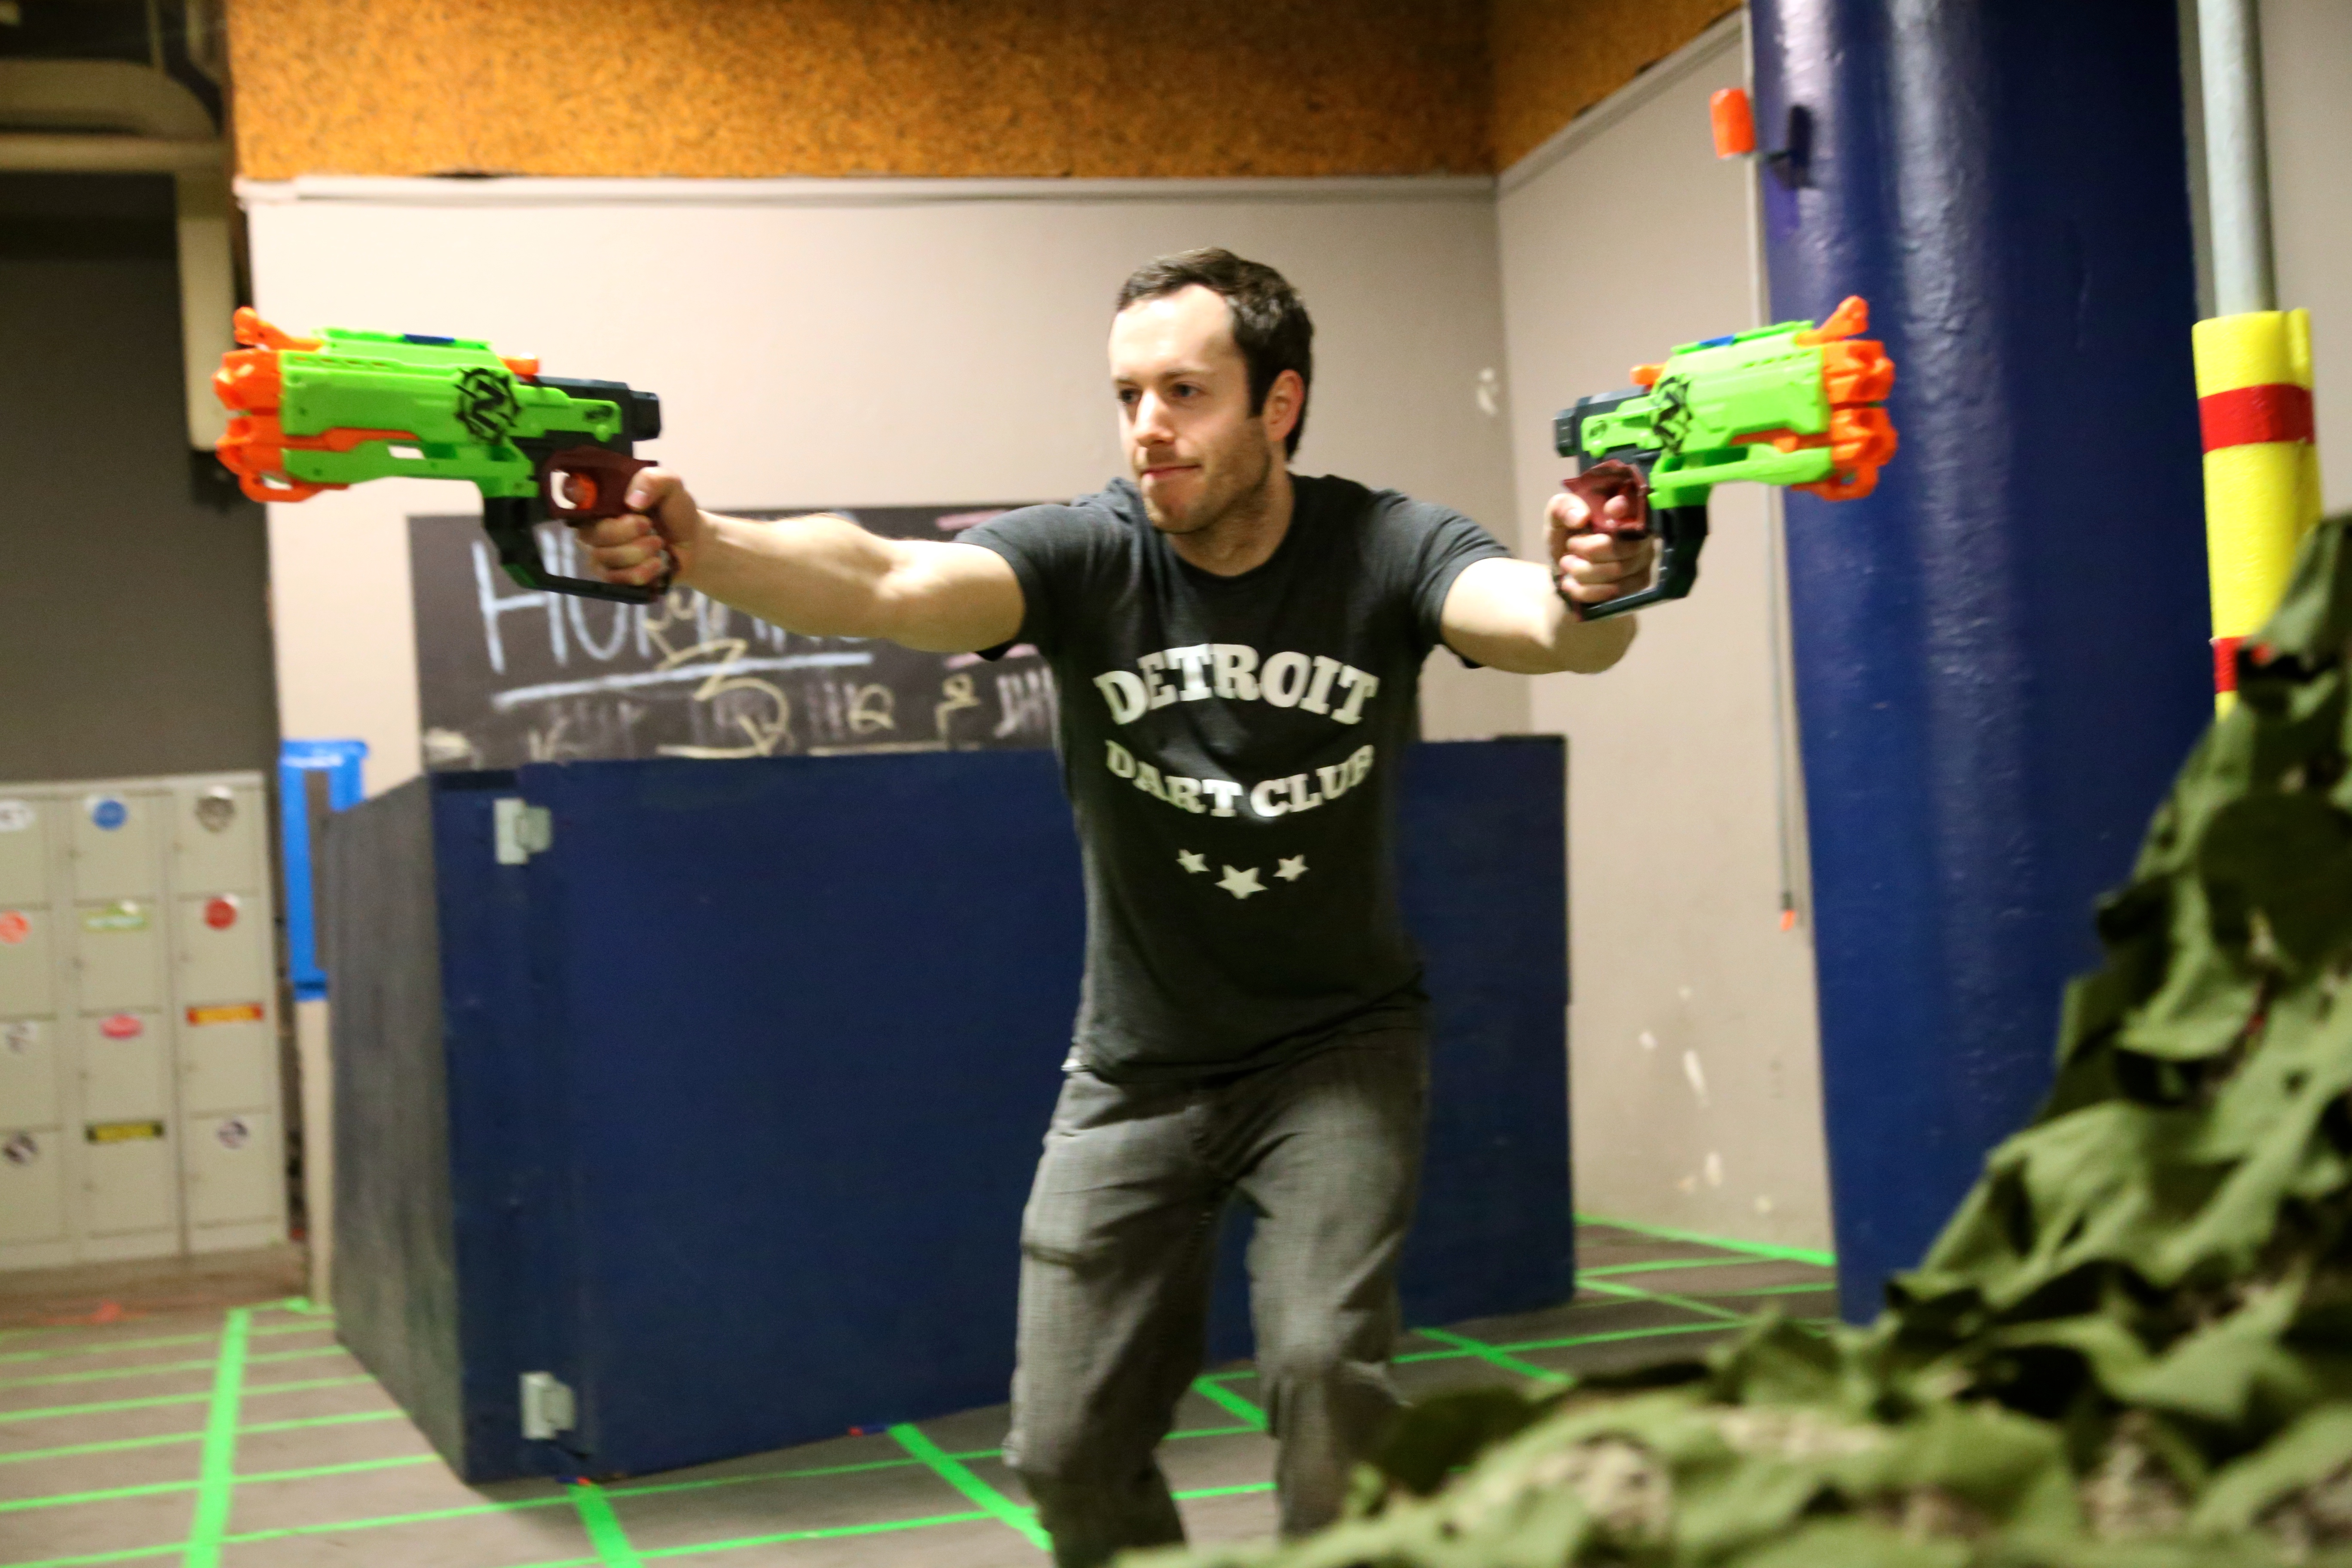 Nerf Guns Rejoice: 5 Things You Need to Know About the